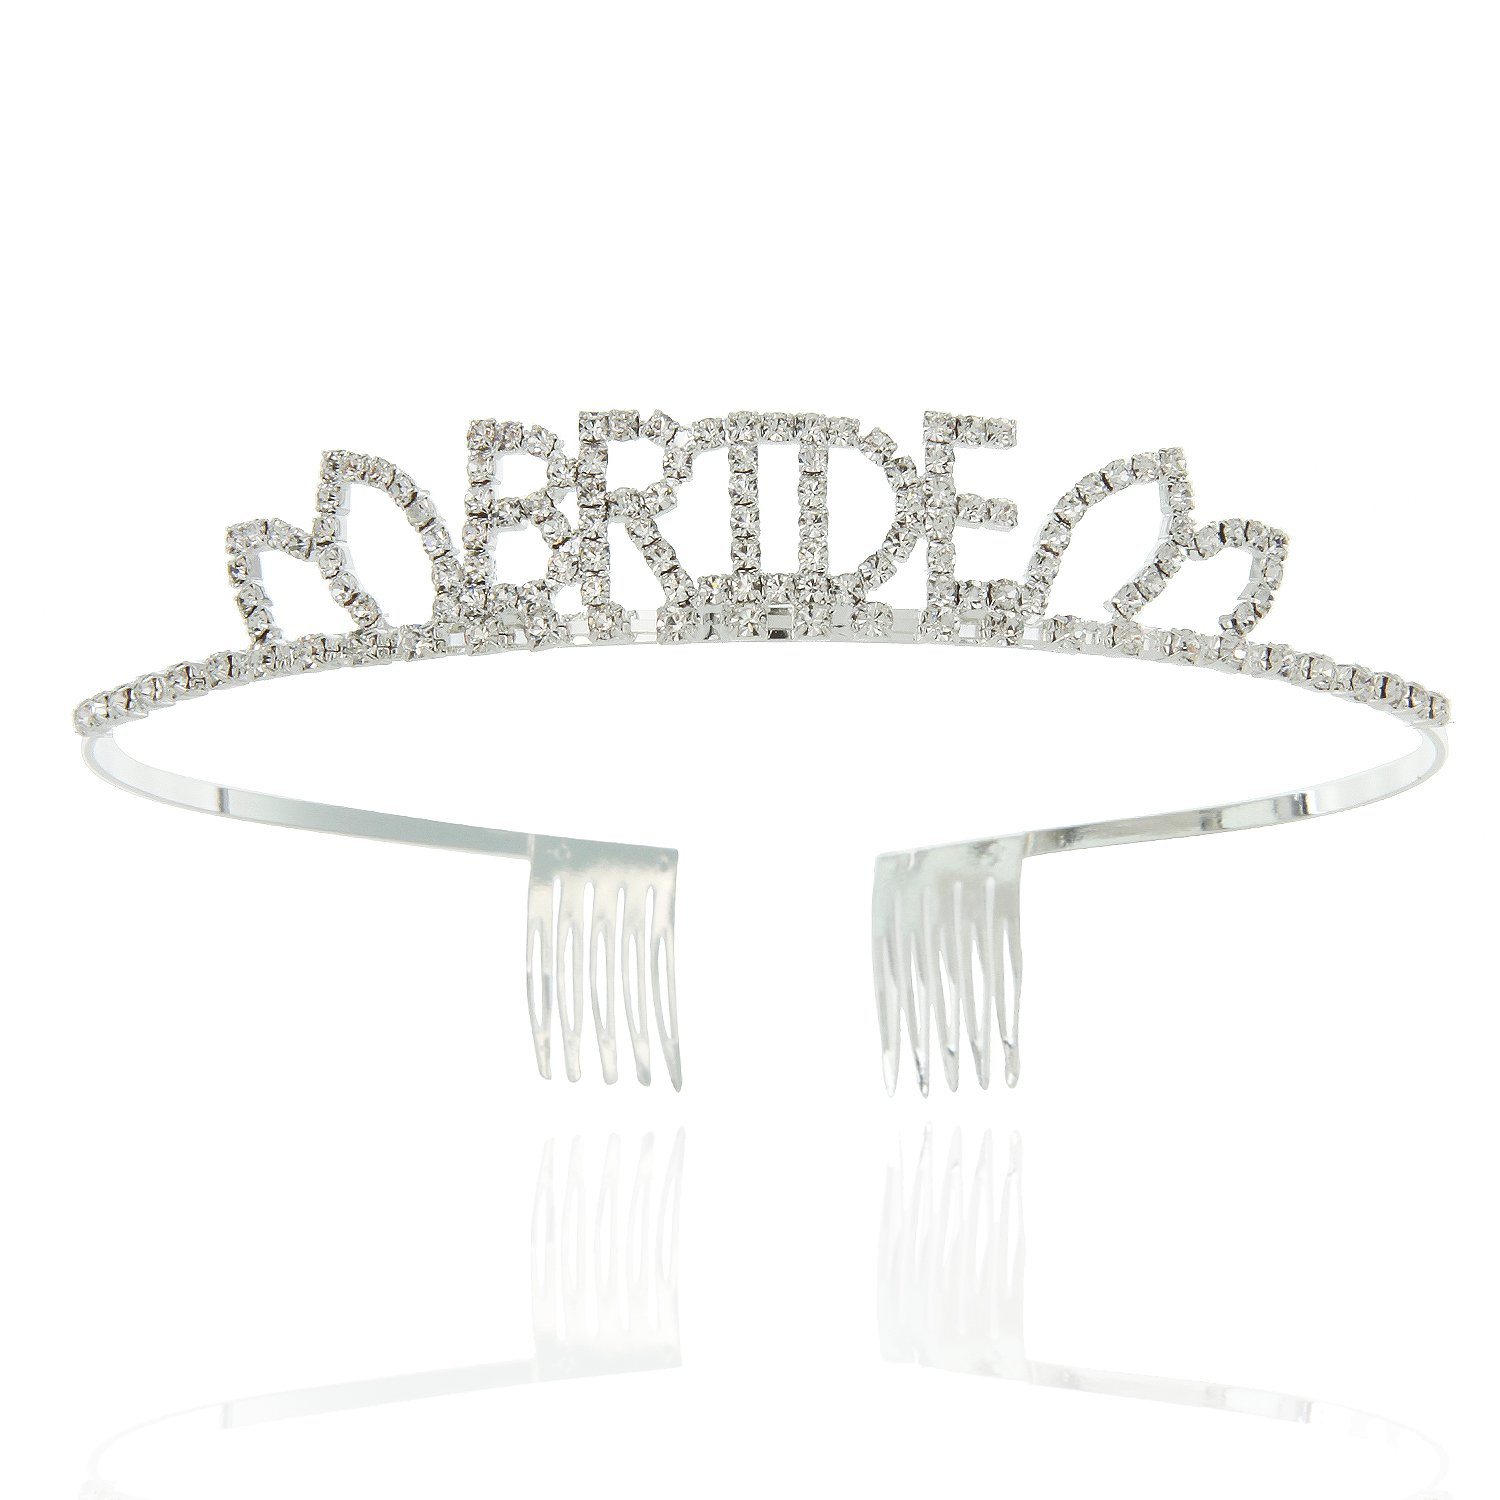 Bride Tiara for Bridal Shower Word with Clear Austrian Crystals in a Silver Short Size Word Finish